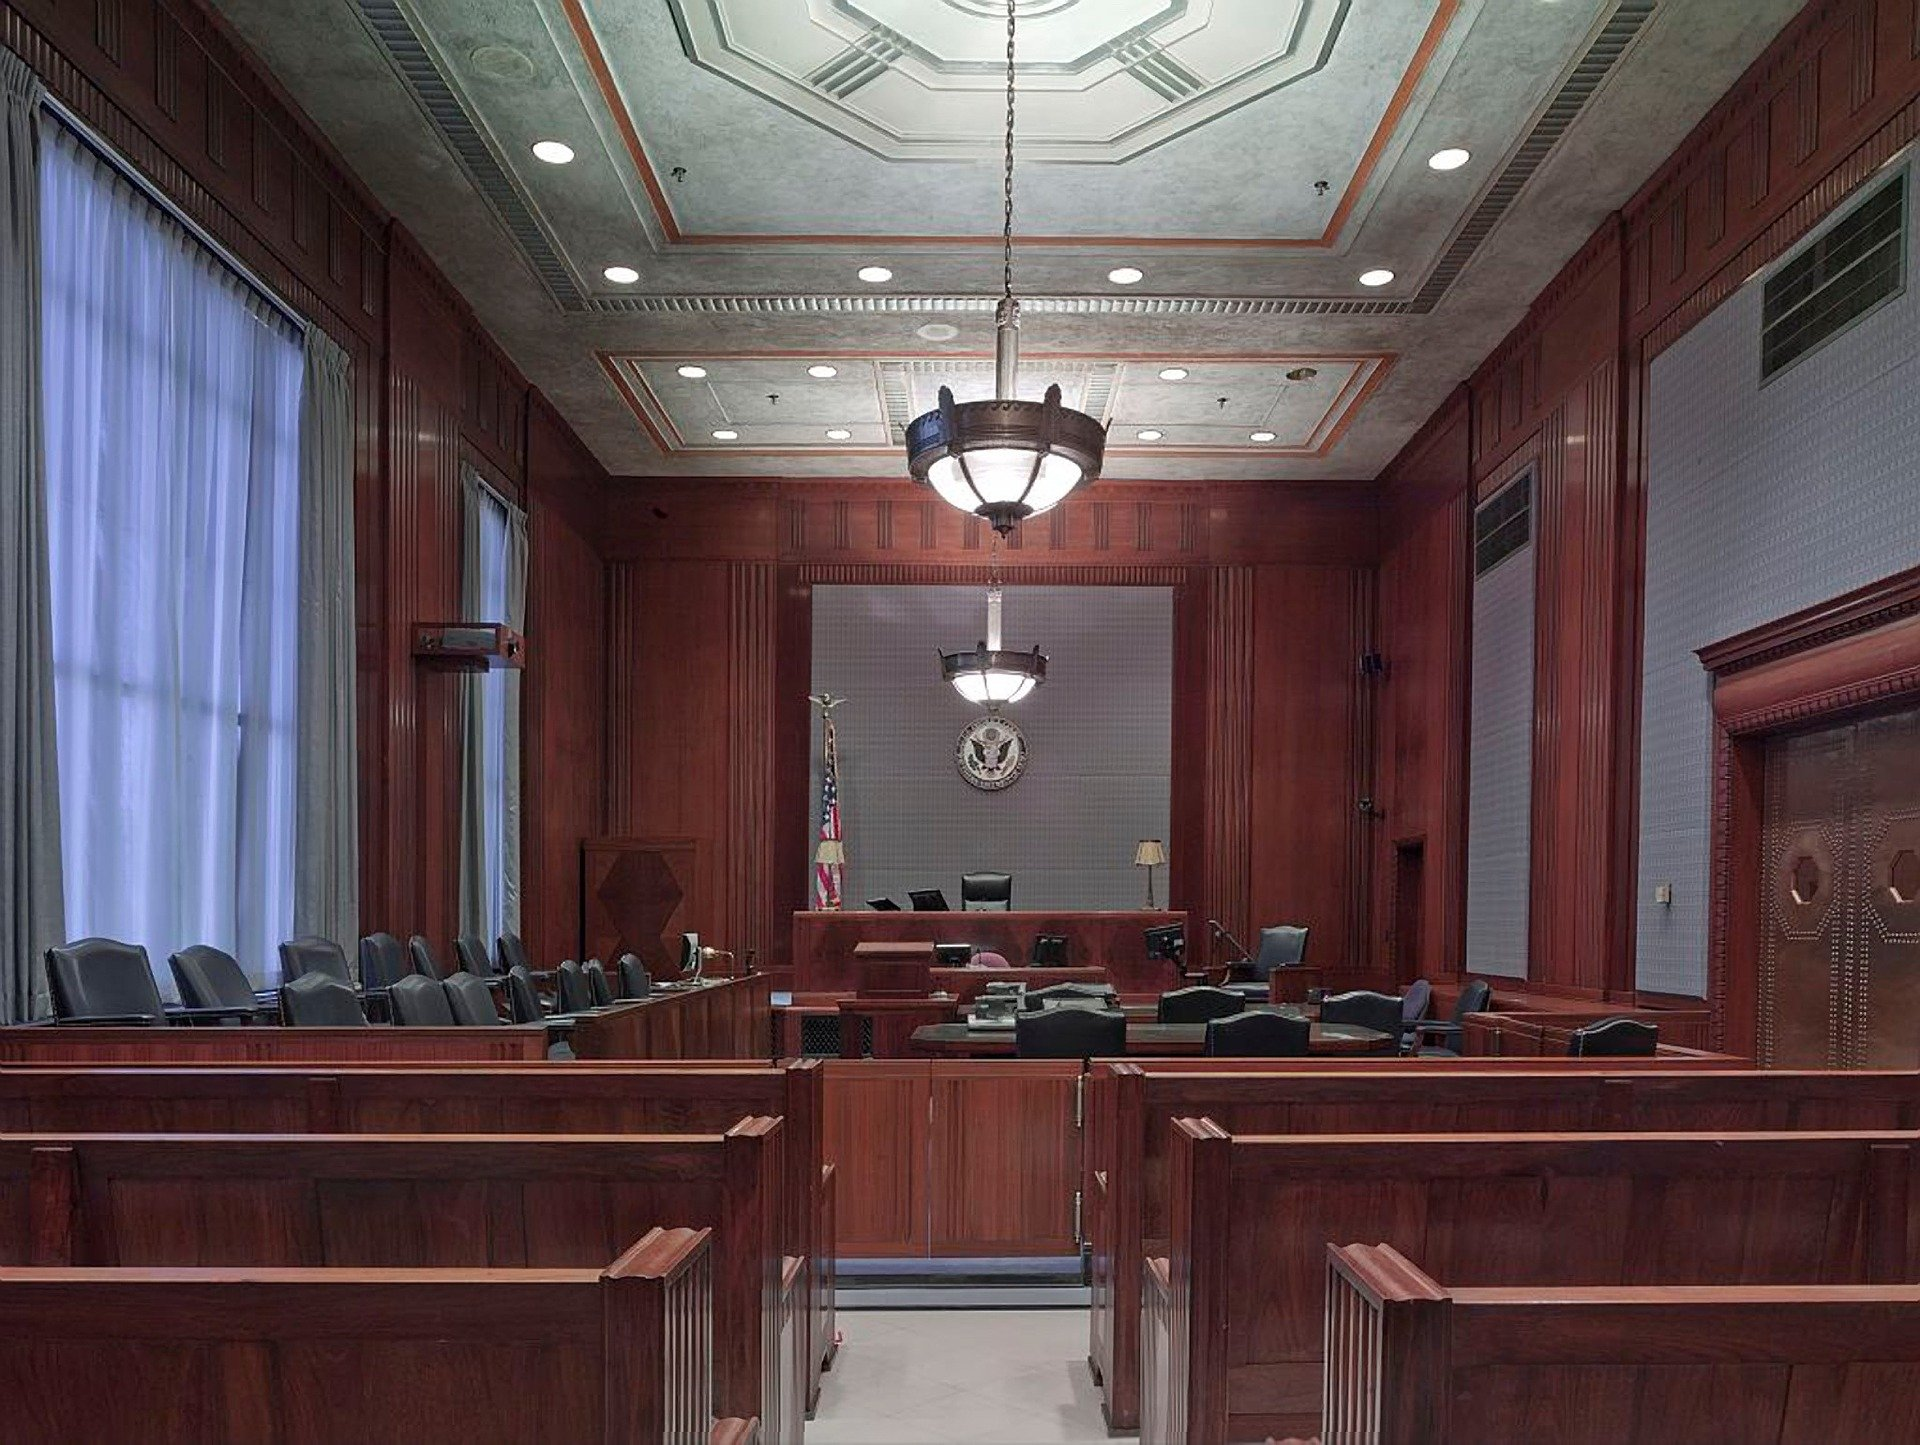 Pictured - Courtroom benches   Sources: Pixabay